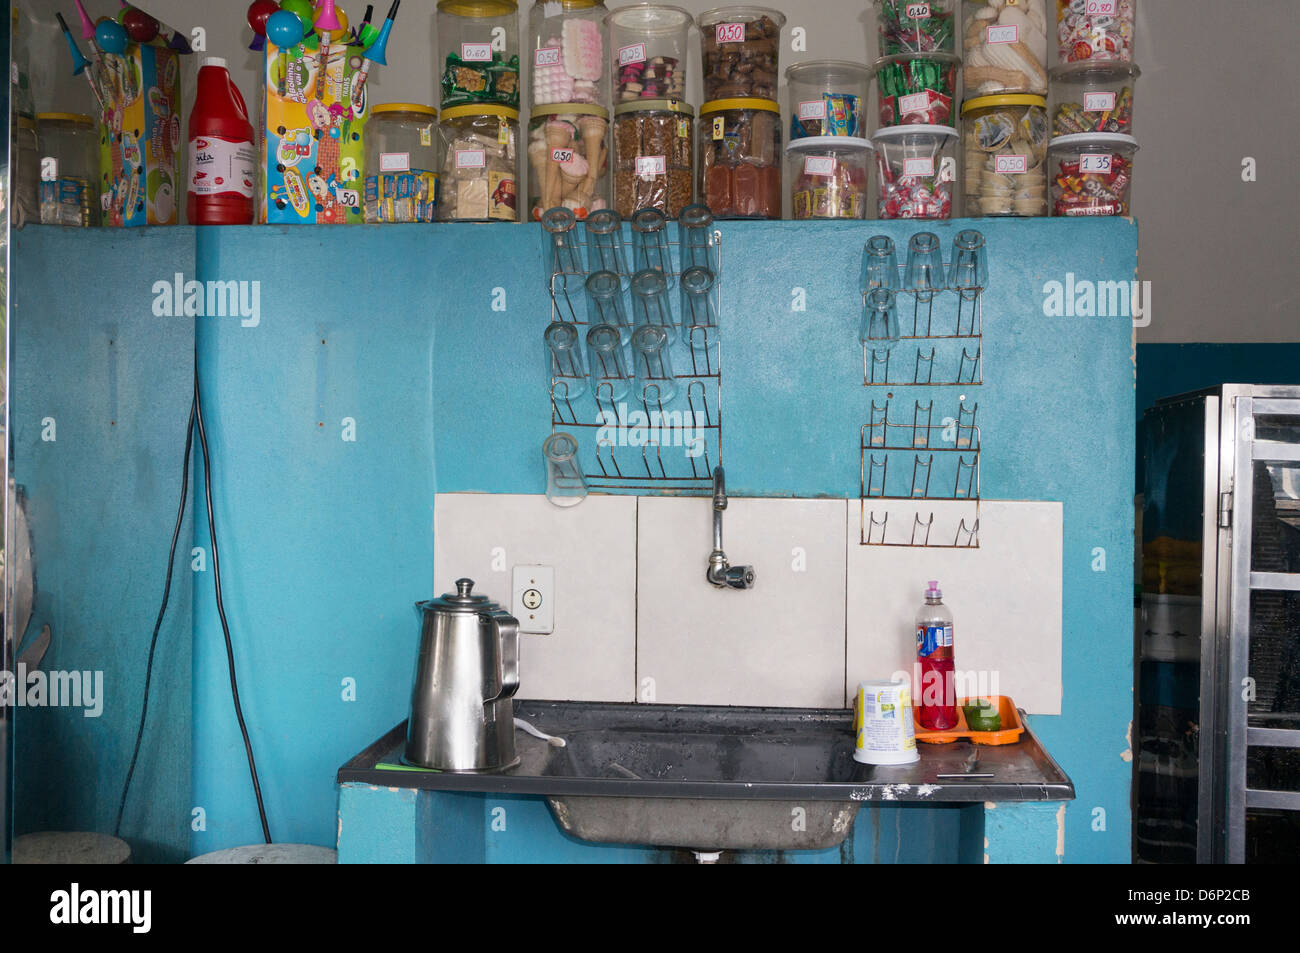 Pequena Lanchonete\' Snack Bar, front Stock Photo: 55803899 - Alamy